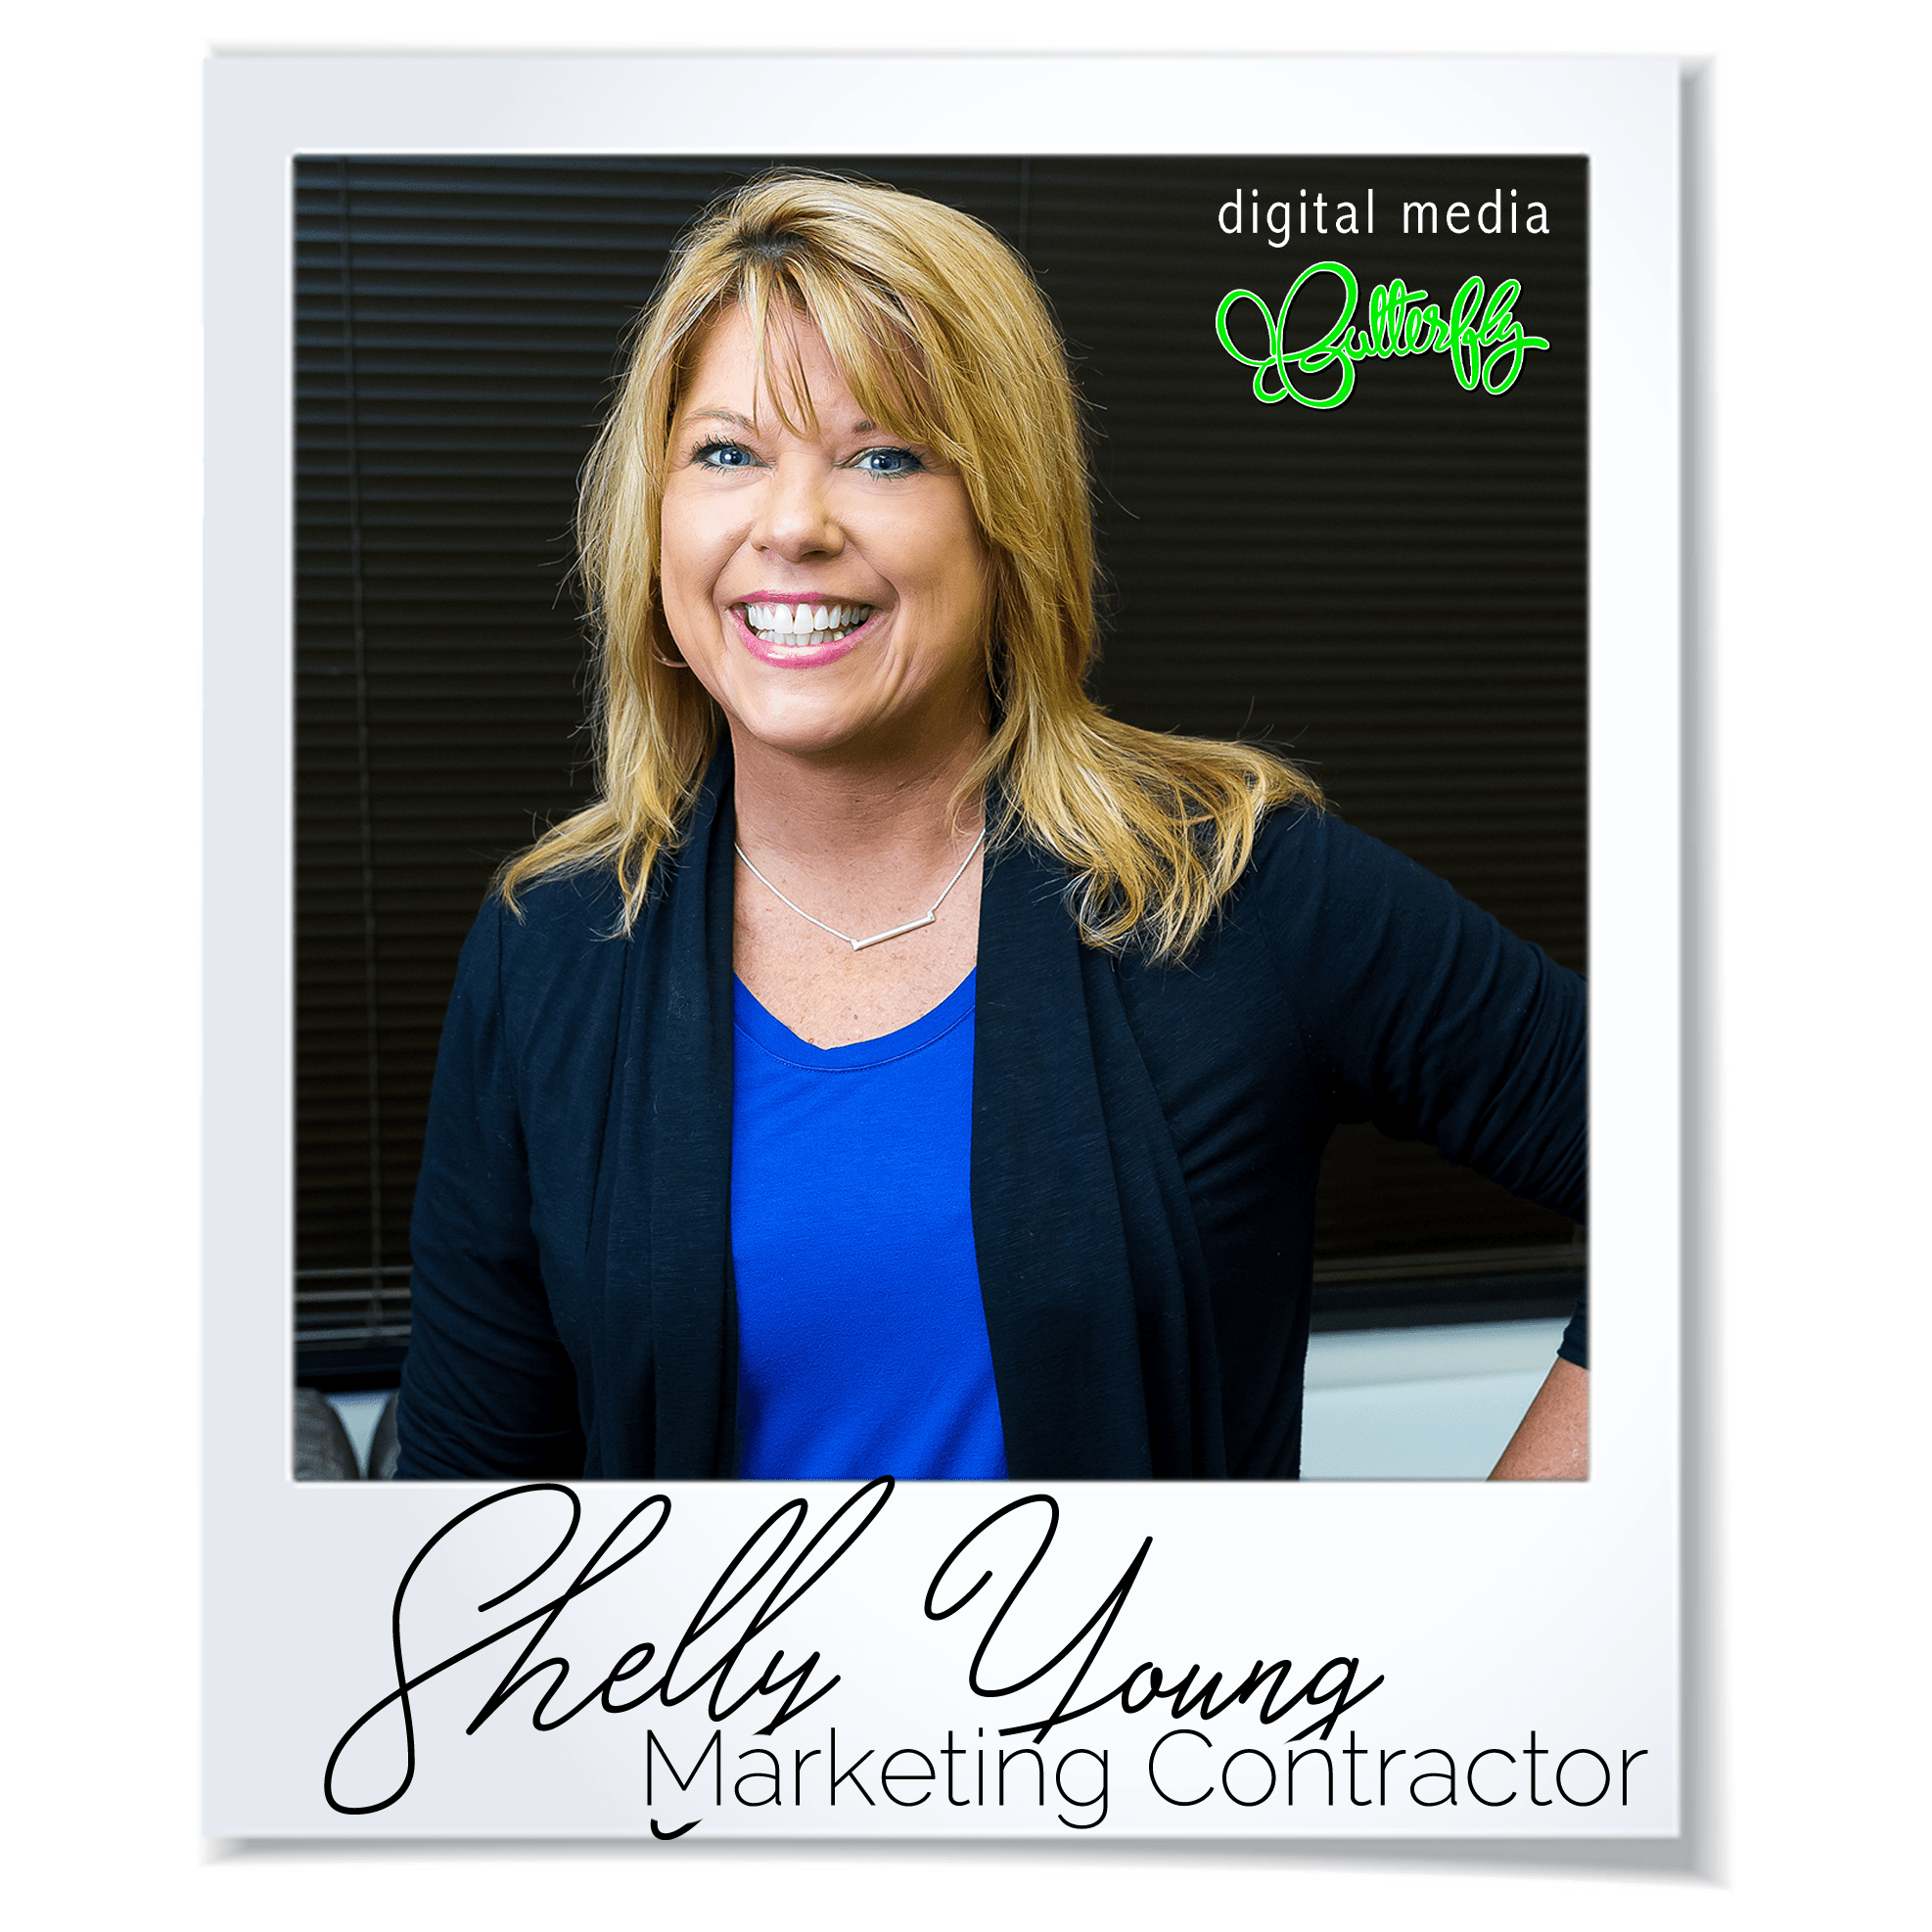 Shelly-Young-Digital-Media-Butterfly-Marketing-Agency-Contractor